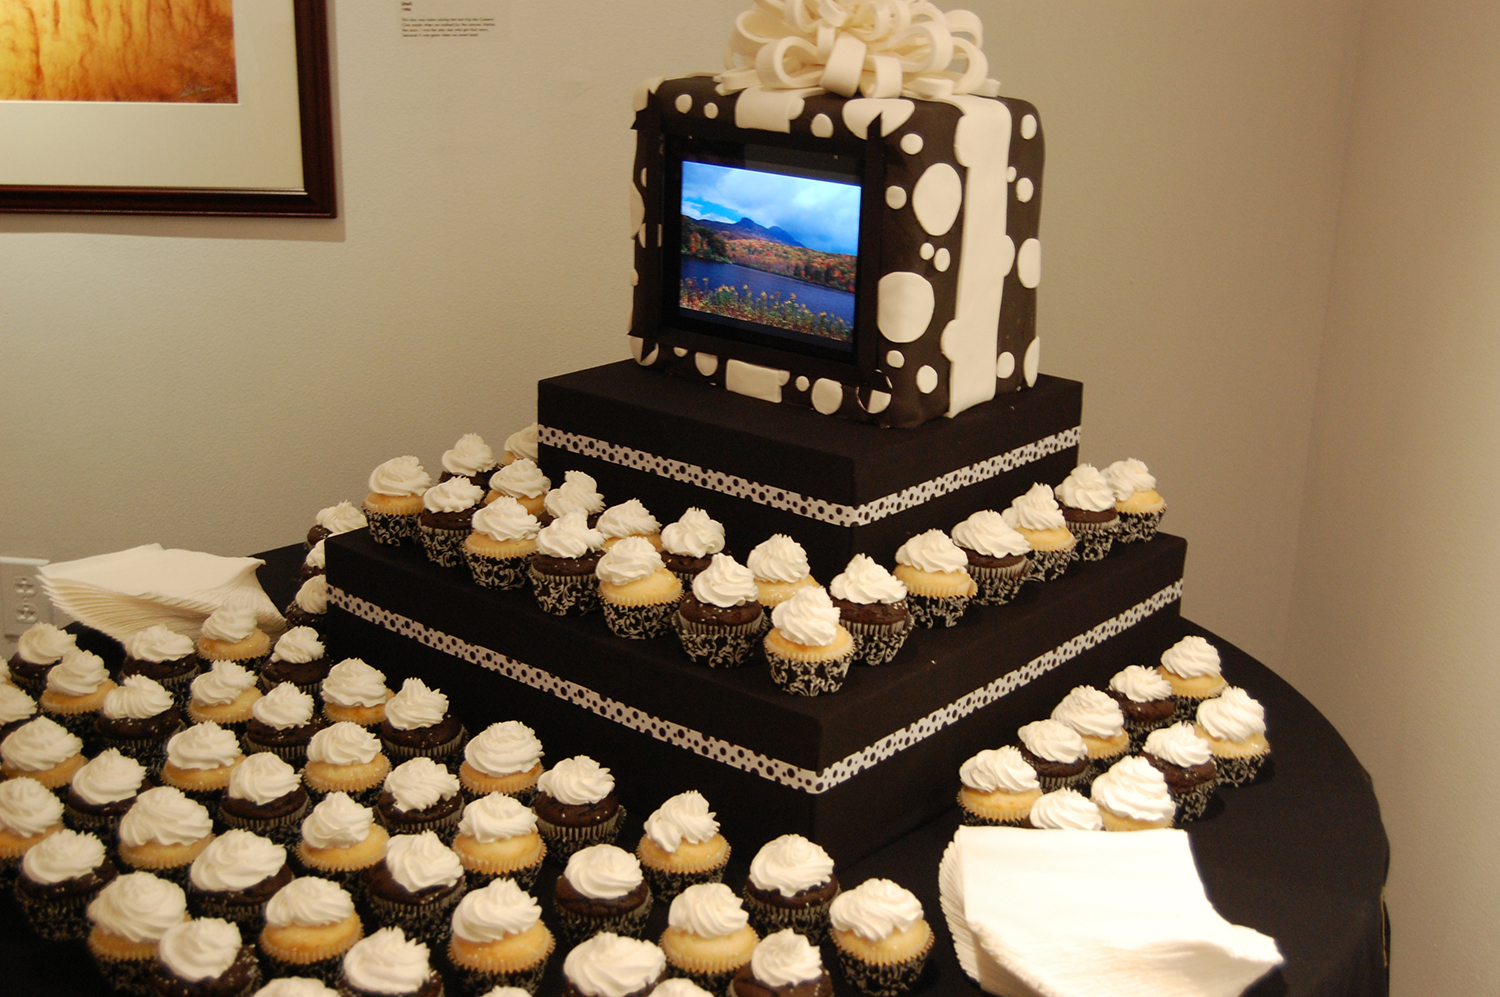 Cake display for Carl Moser's exhibition opening and 90th birthday celebration. The cake had an iPad embedded that scrolled through Moser's work.